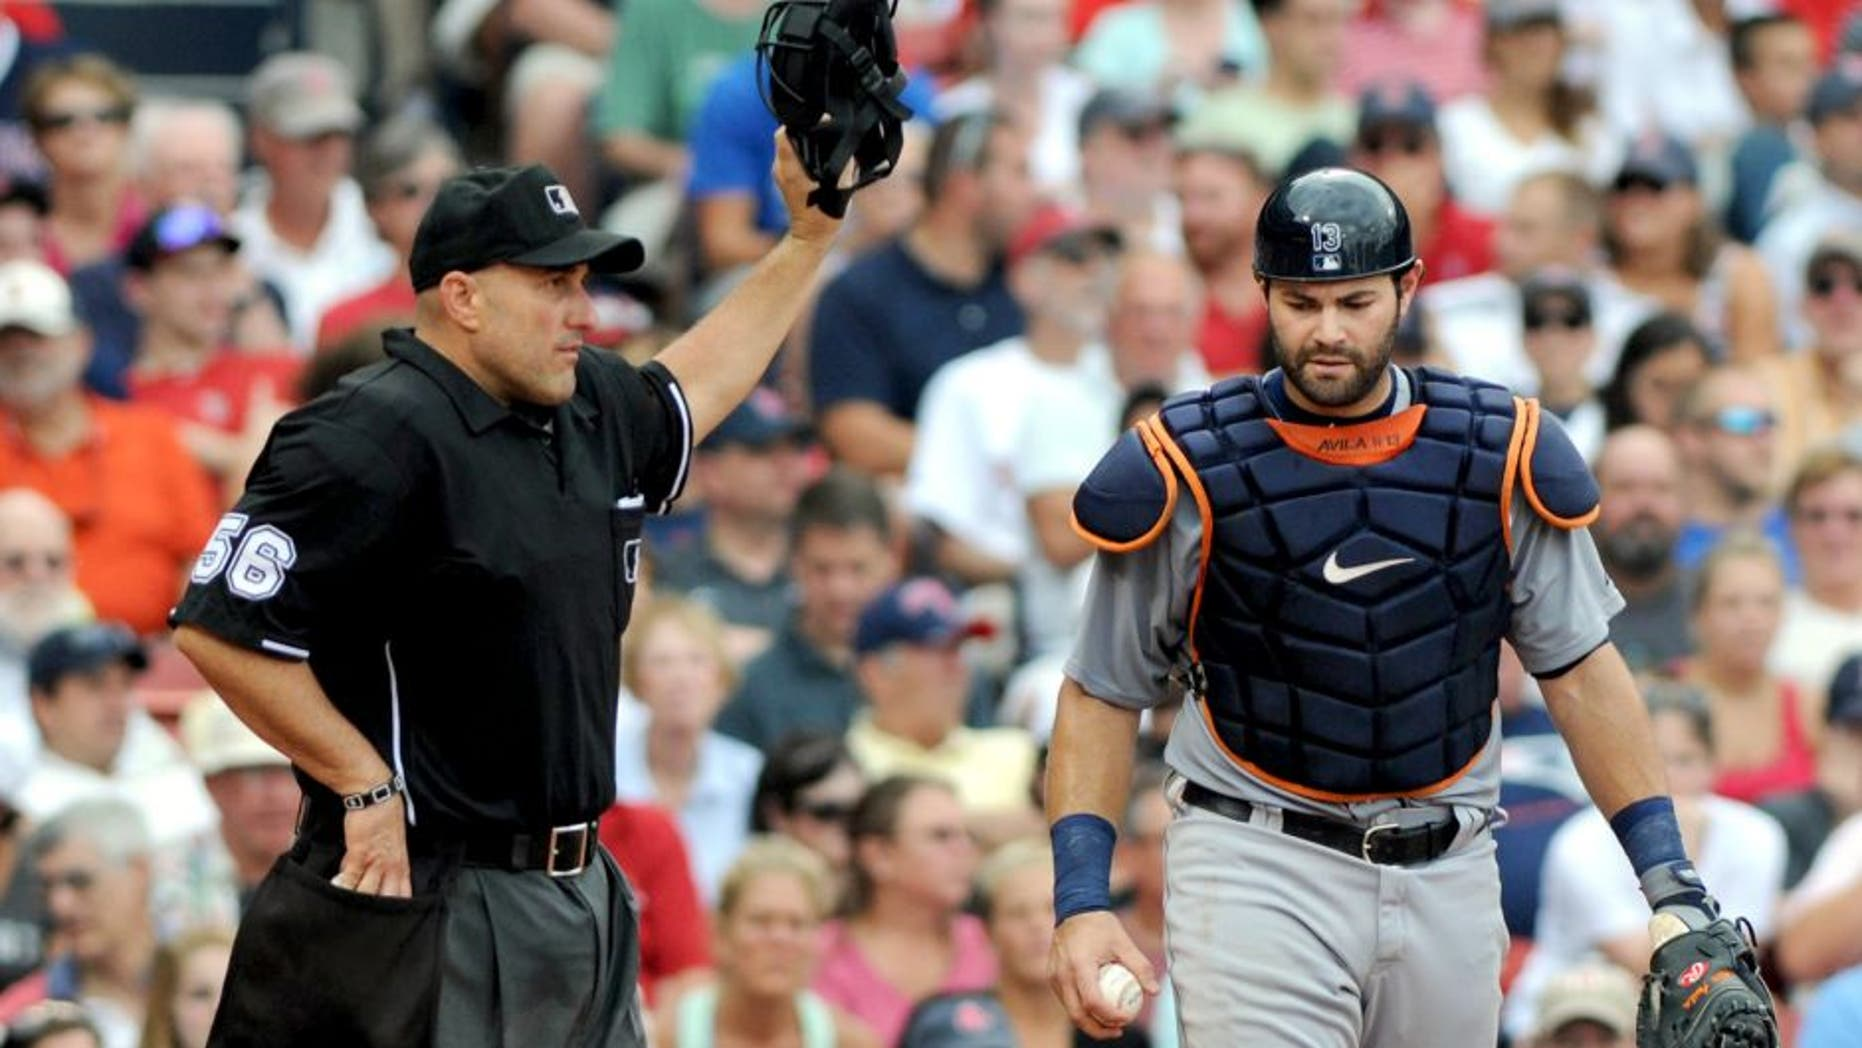 BOSTON, MA - SEPTEMBER 2: Alex Avila #13 of the Detroit Tigers calls for timeout from homeplate umpire Eric Cooper #56 in the seventh inning against the Boston Red Sox at Fenway Park on September 2, 2013 in Boston, Massachusetts. The Tigers won 3-0. (Photo by Darren McCollester/Getty Images)